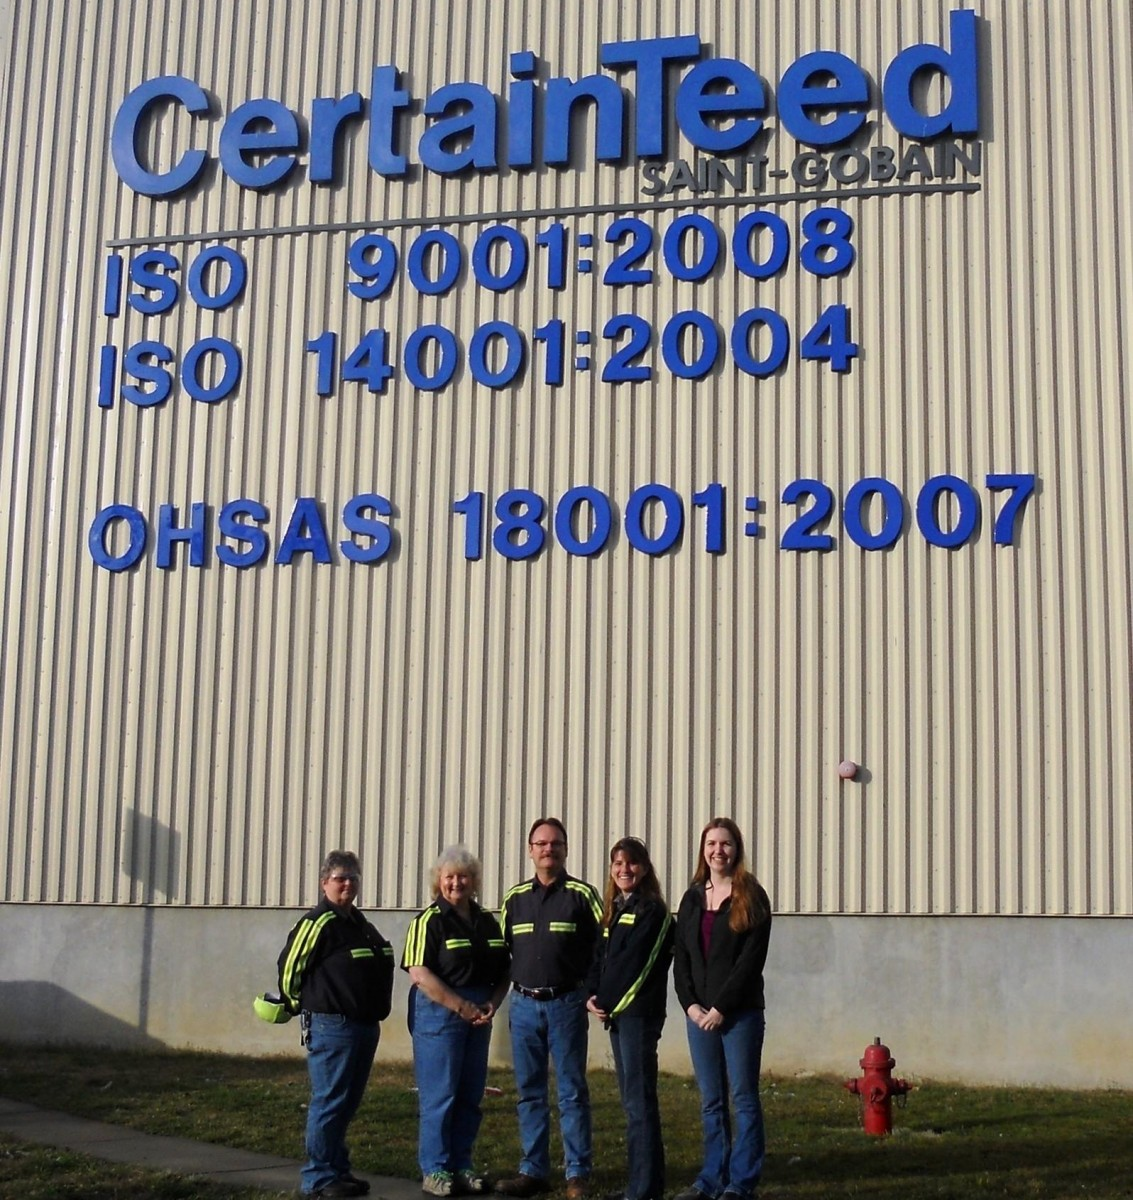 Certainteed S Roofing Plant In Oxford N C Achieves